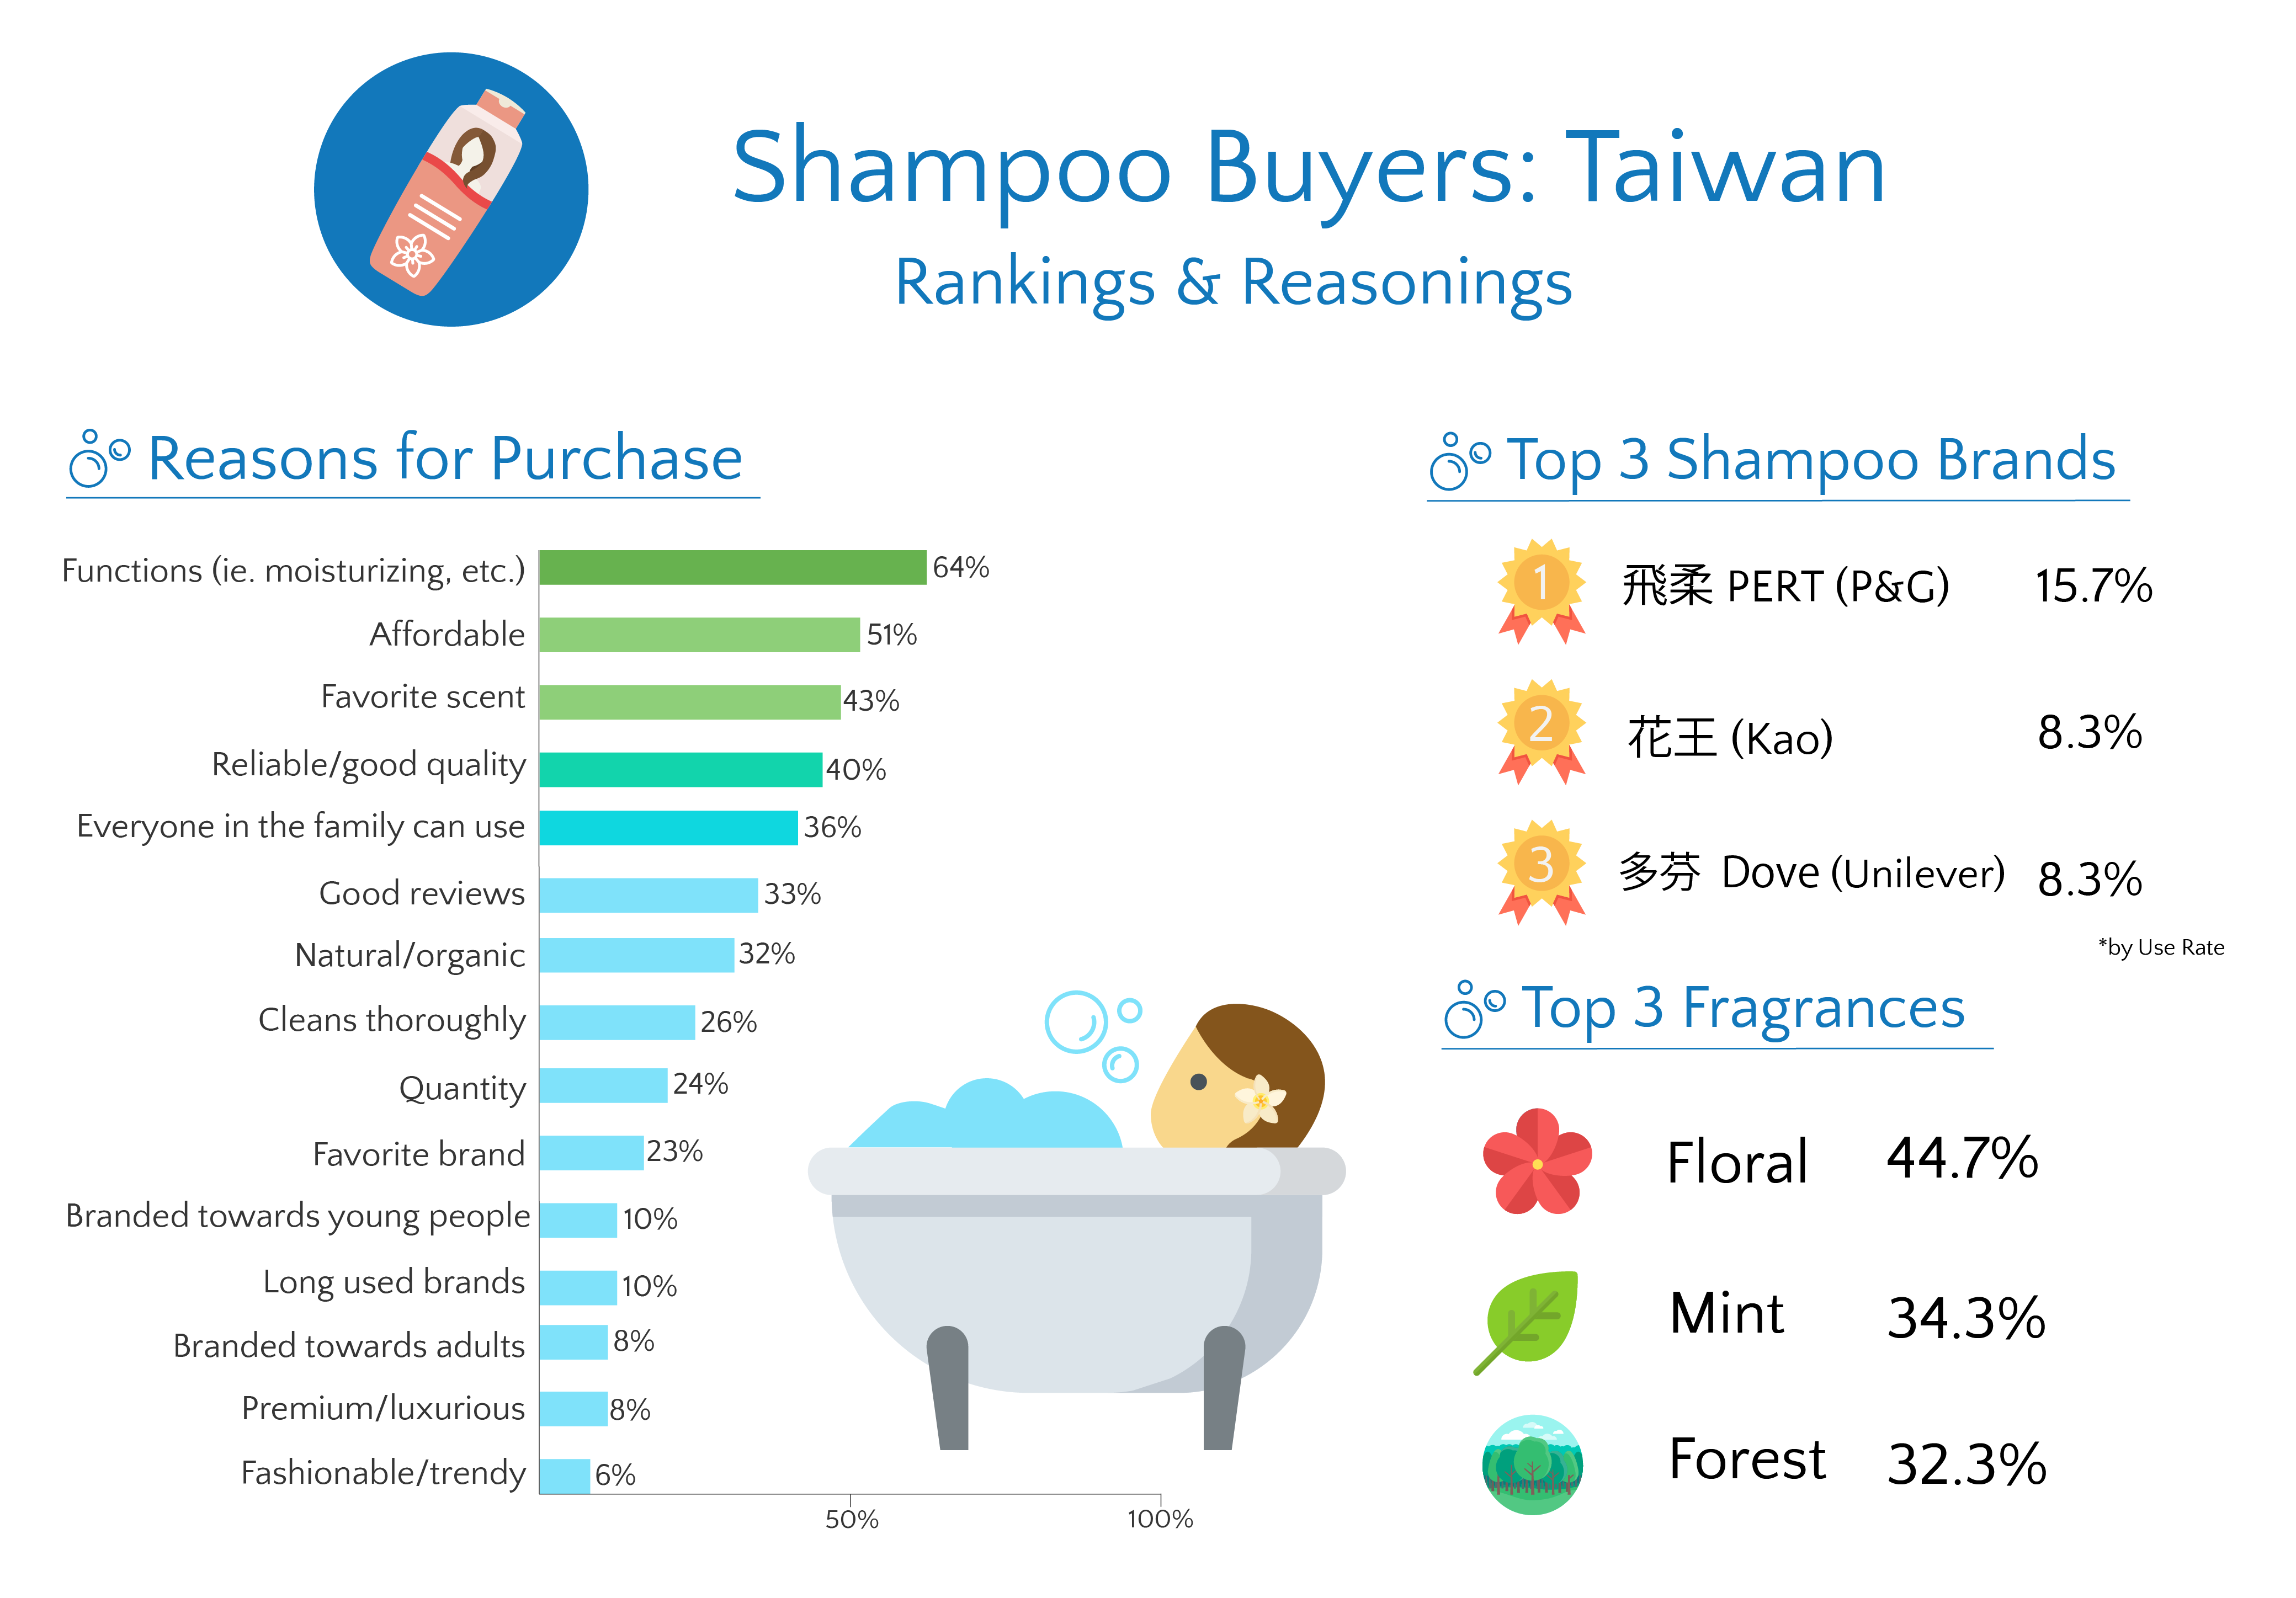 Shampoo Insights - What They Buy and Why